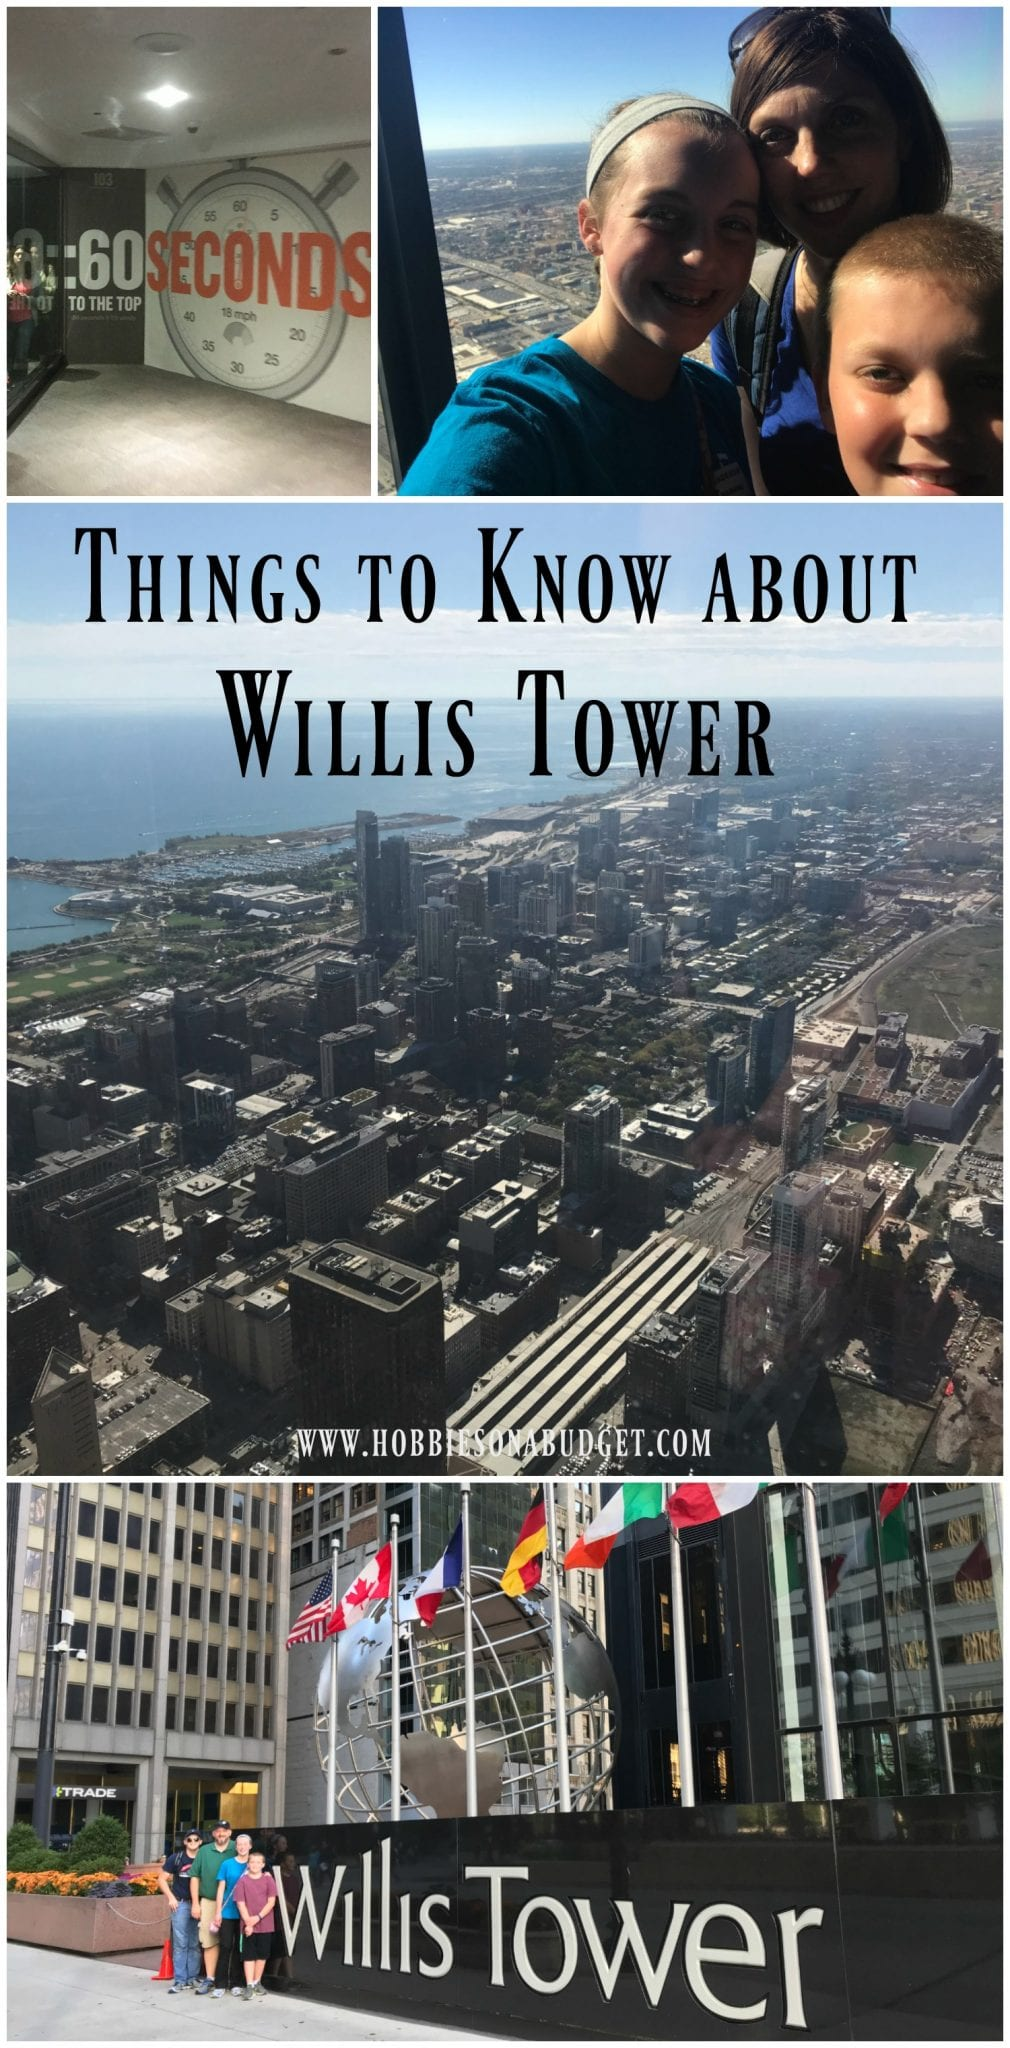 Things to know about Willis Tower